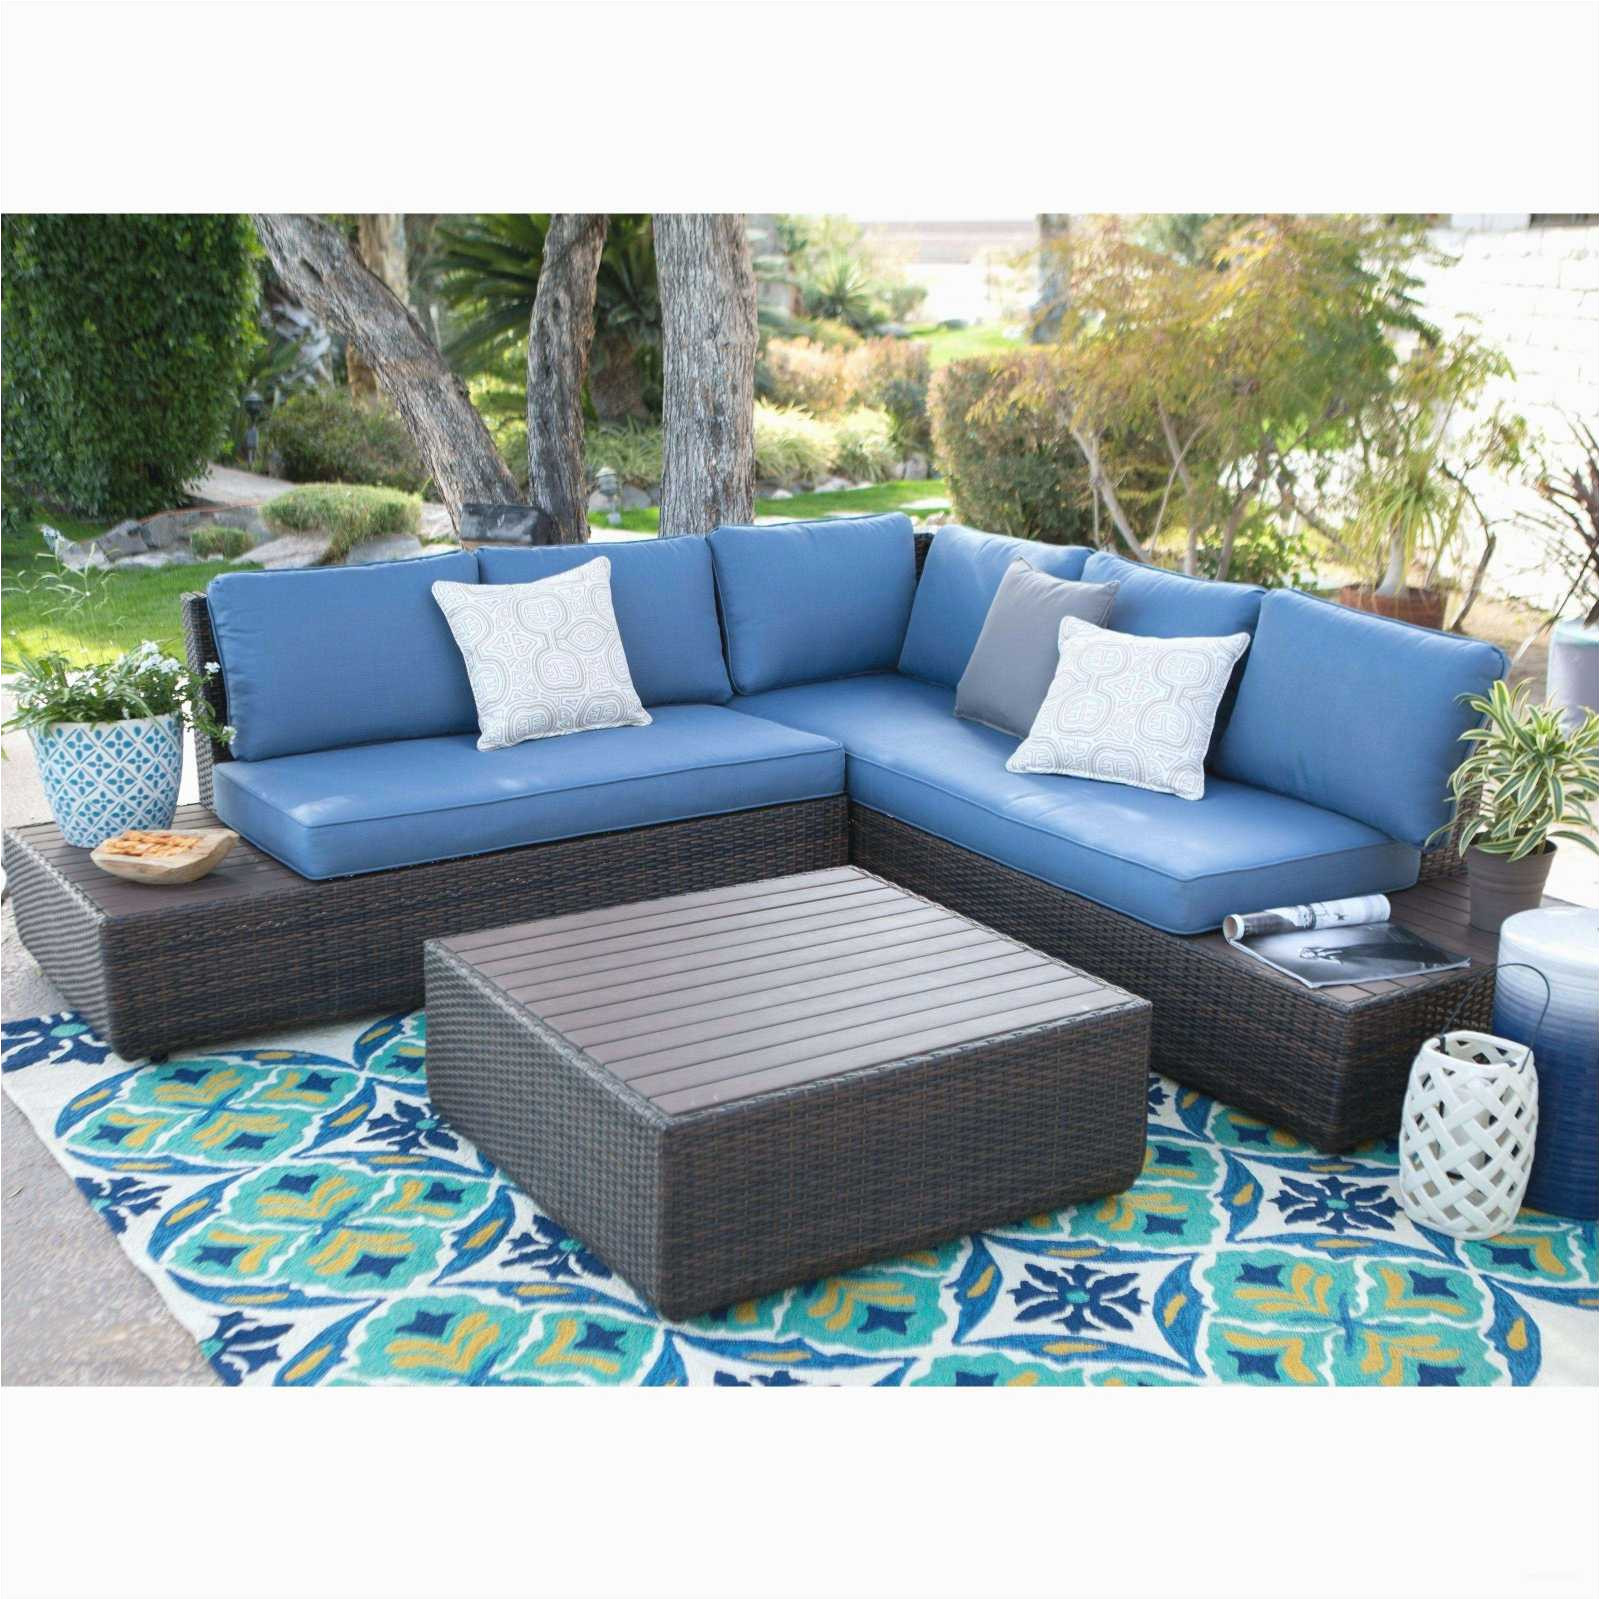 wicker outdoor sofa 0d patio chairs sale replacement cushions ideas outdoor furniture seat cushions